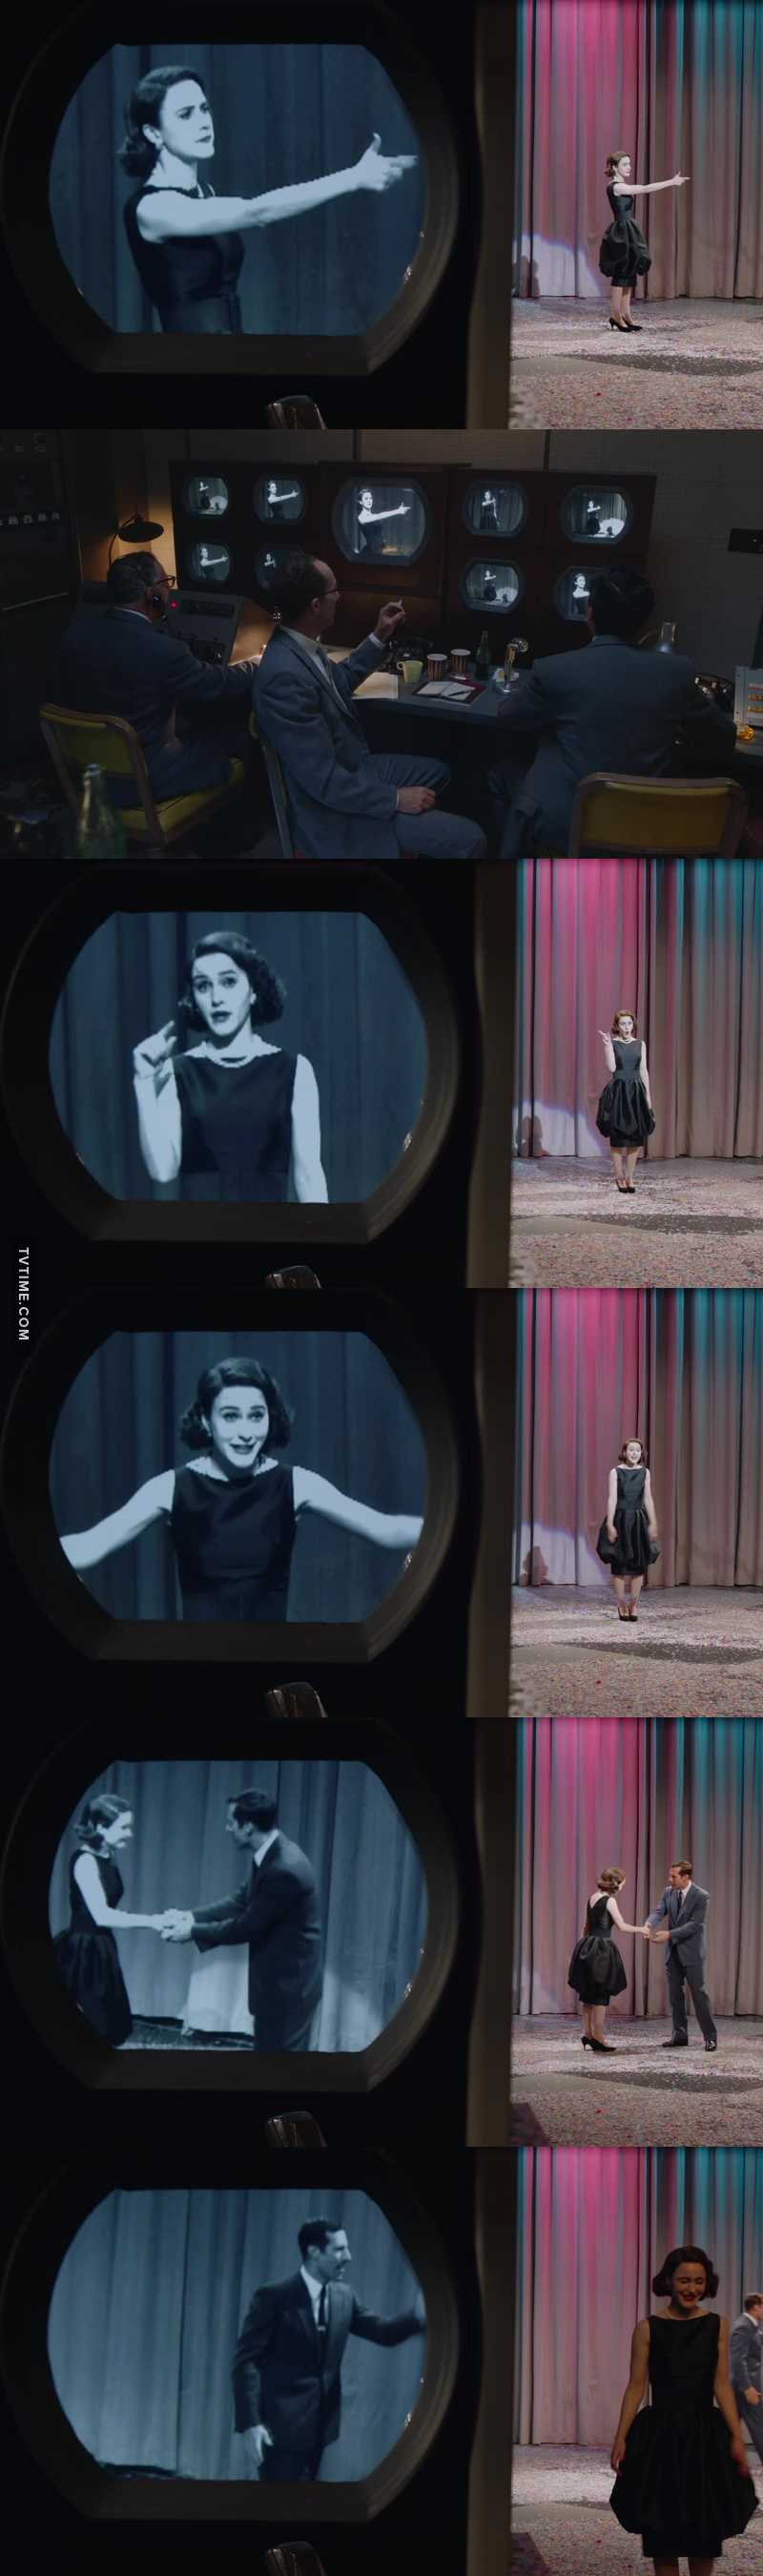 Mrs.Maisel was funny and wonderful on television ❤️❤️❤️